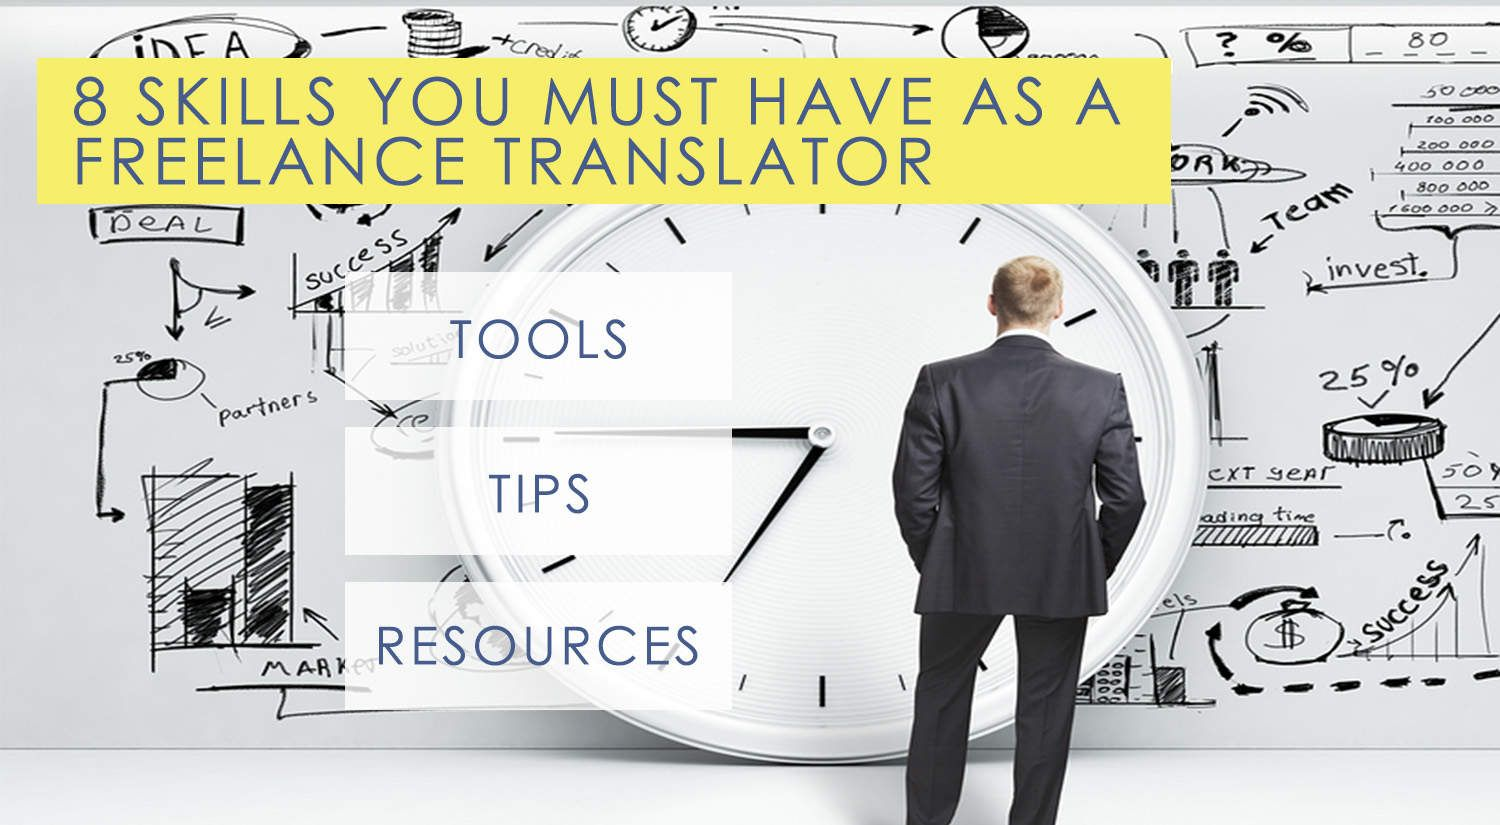 Eight necessary skills you must have to succeed as a freelance translator and how to get them or improve them.